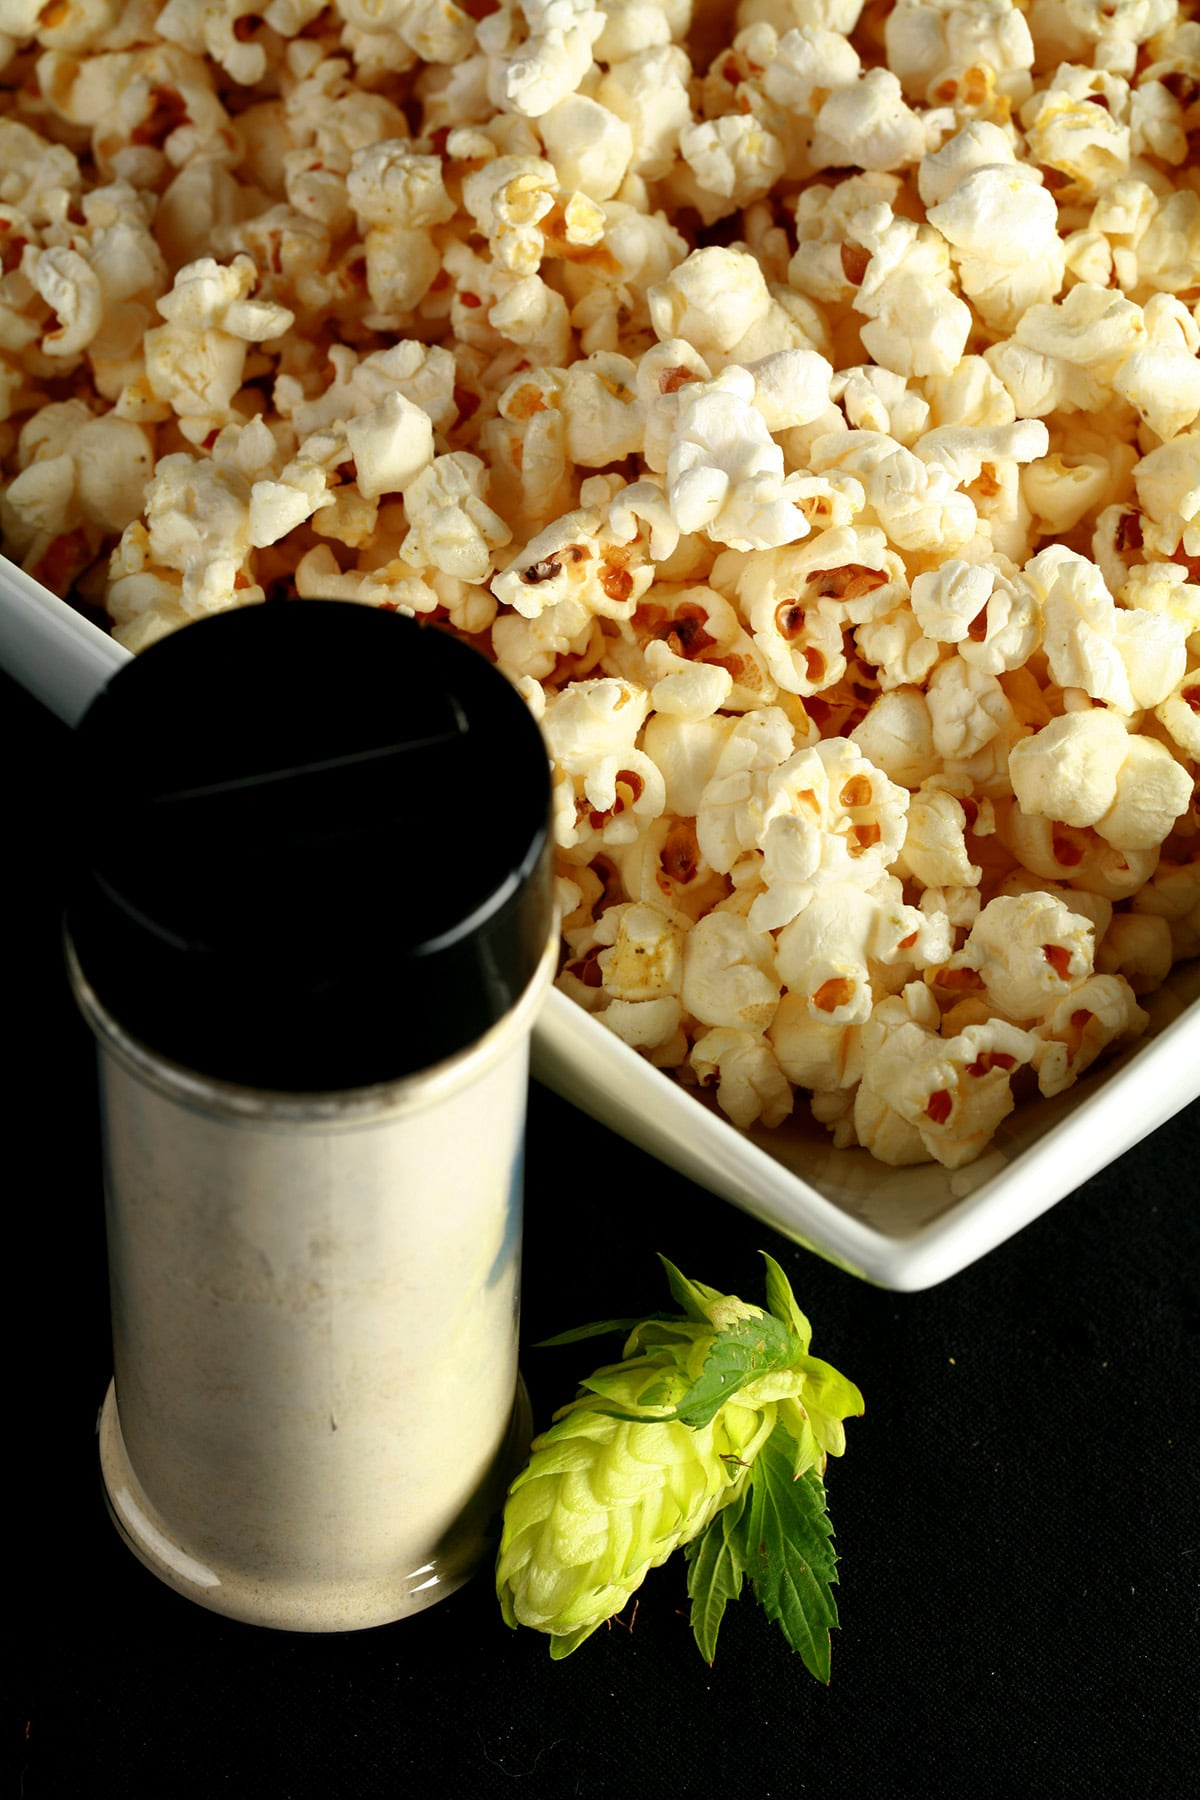 A large rectangular bowl holds hop-seasoned popcorn - hopcorn! There is a small canister of the popcorn seasoning, and a fresh hop flower next to the bowl.